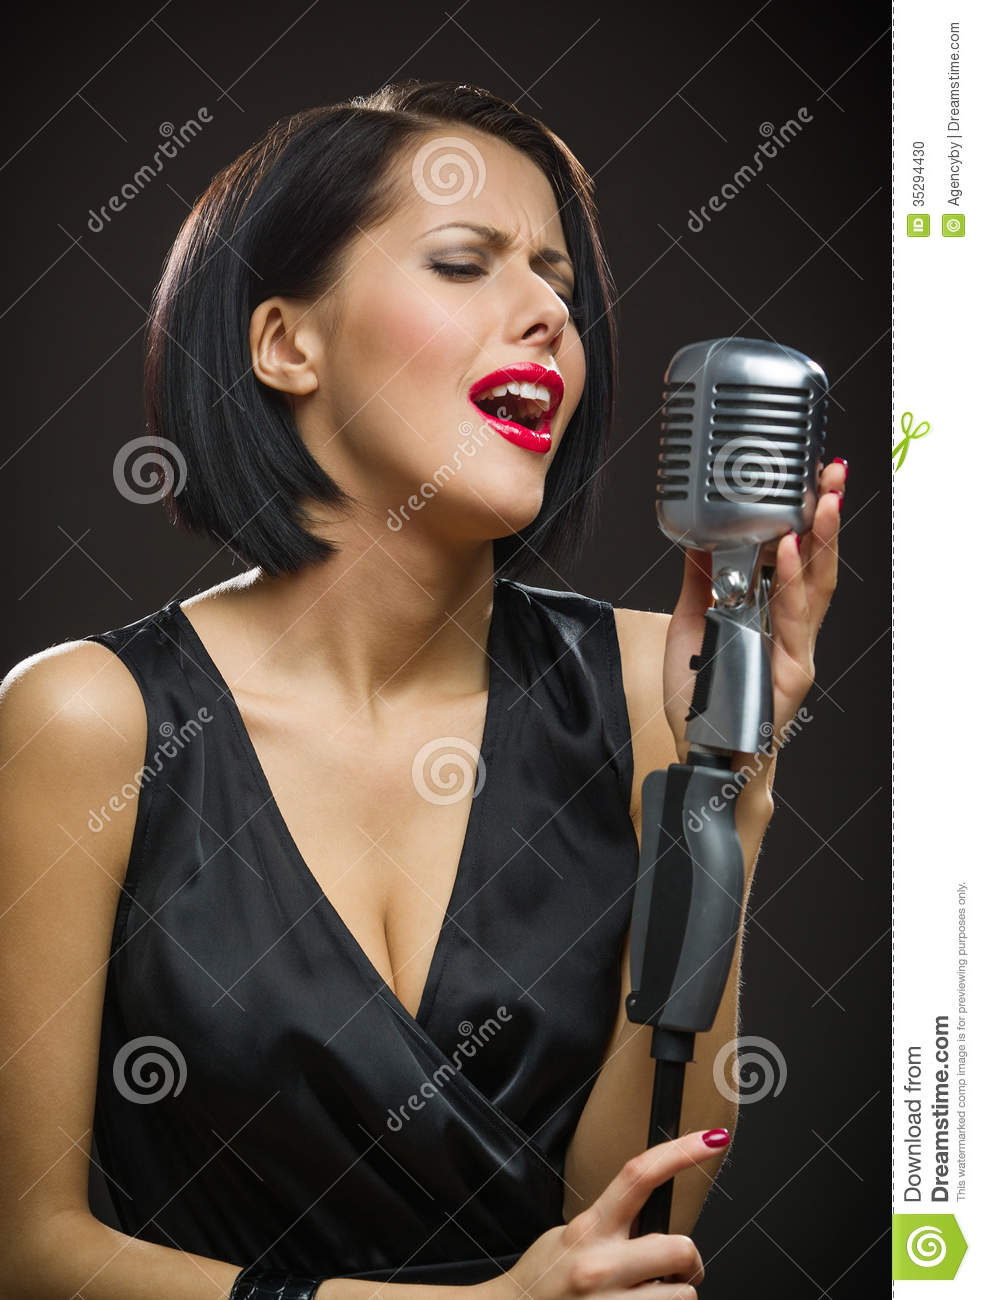 Female singer with closed eyes keeping microphone